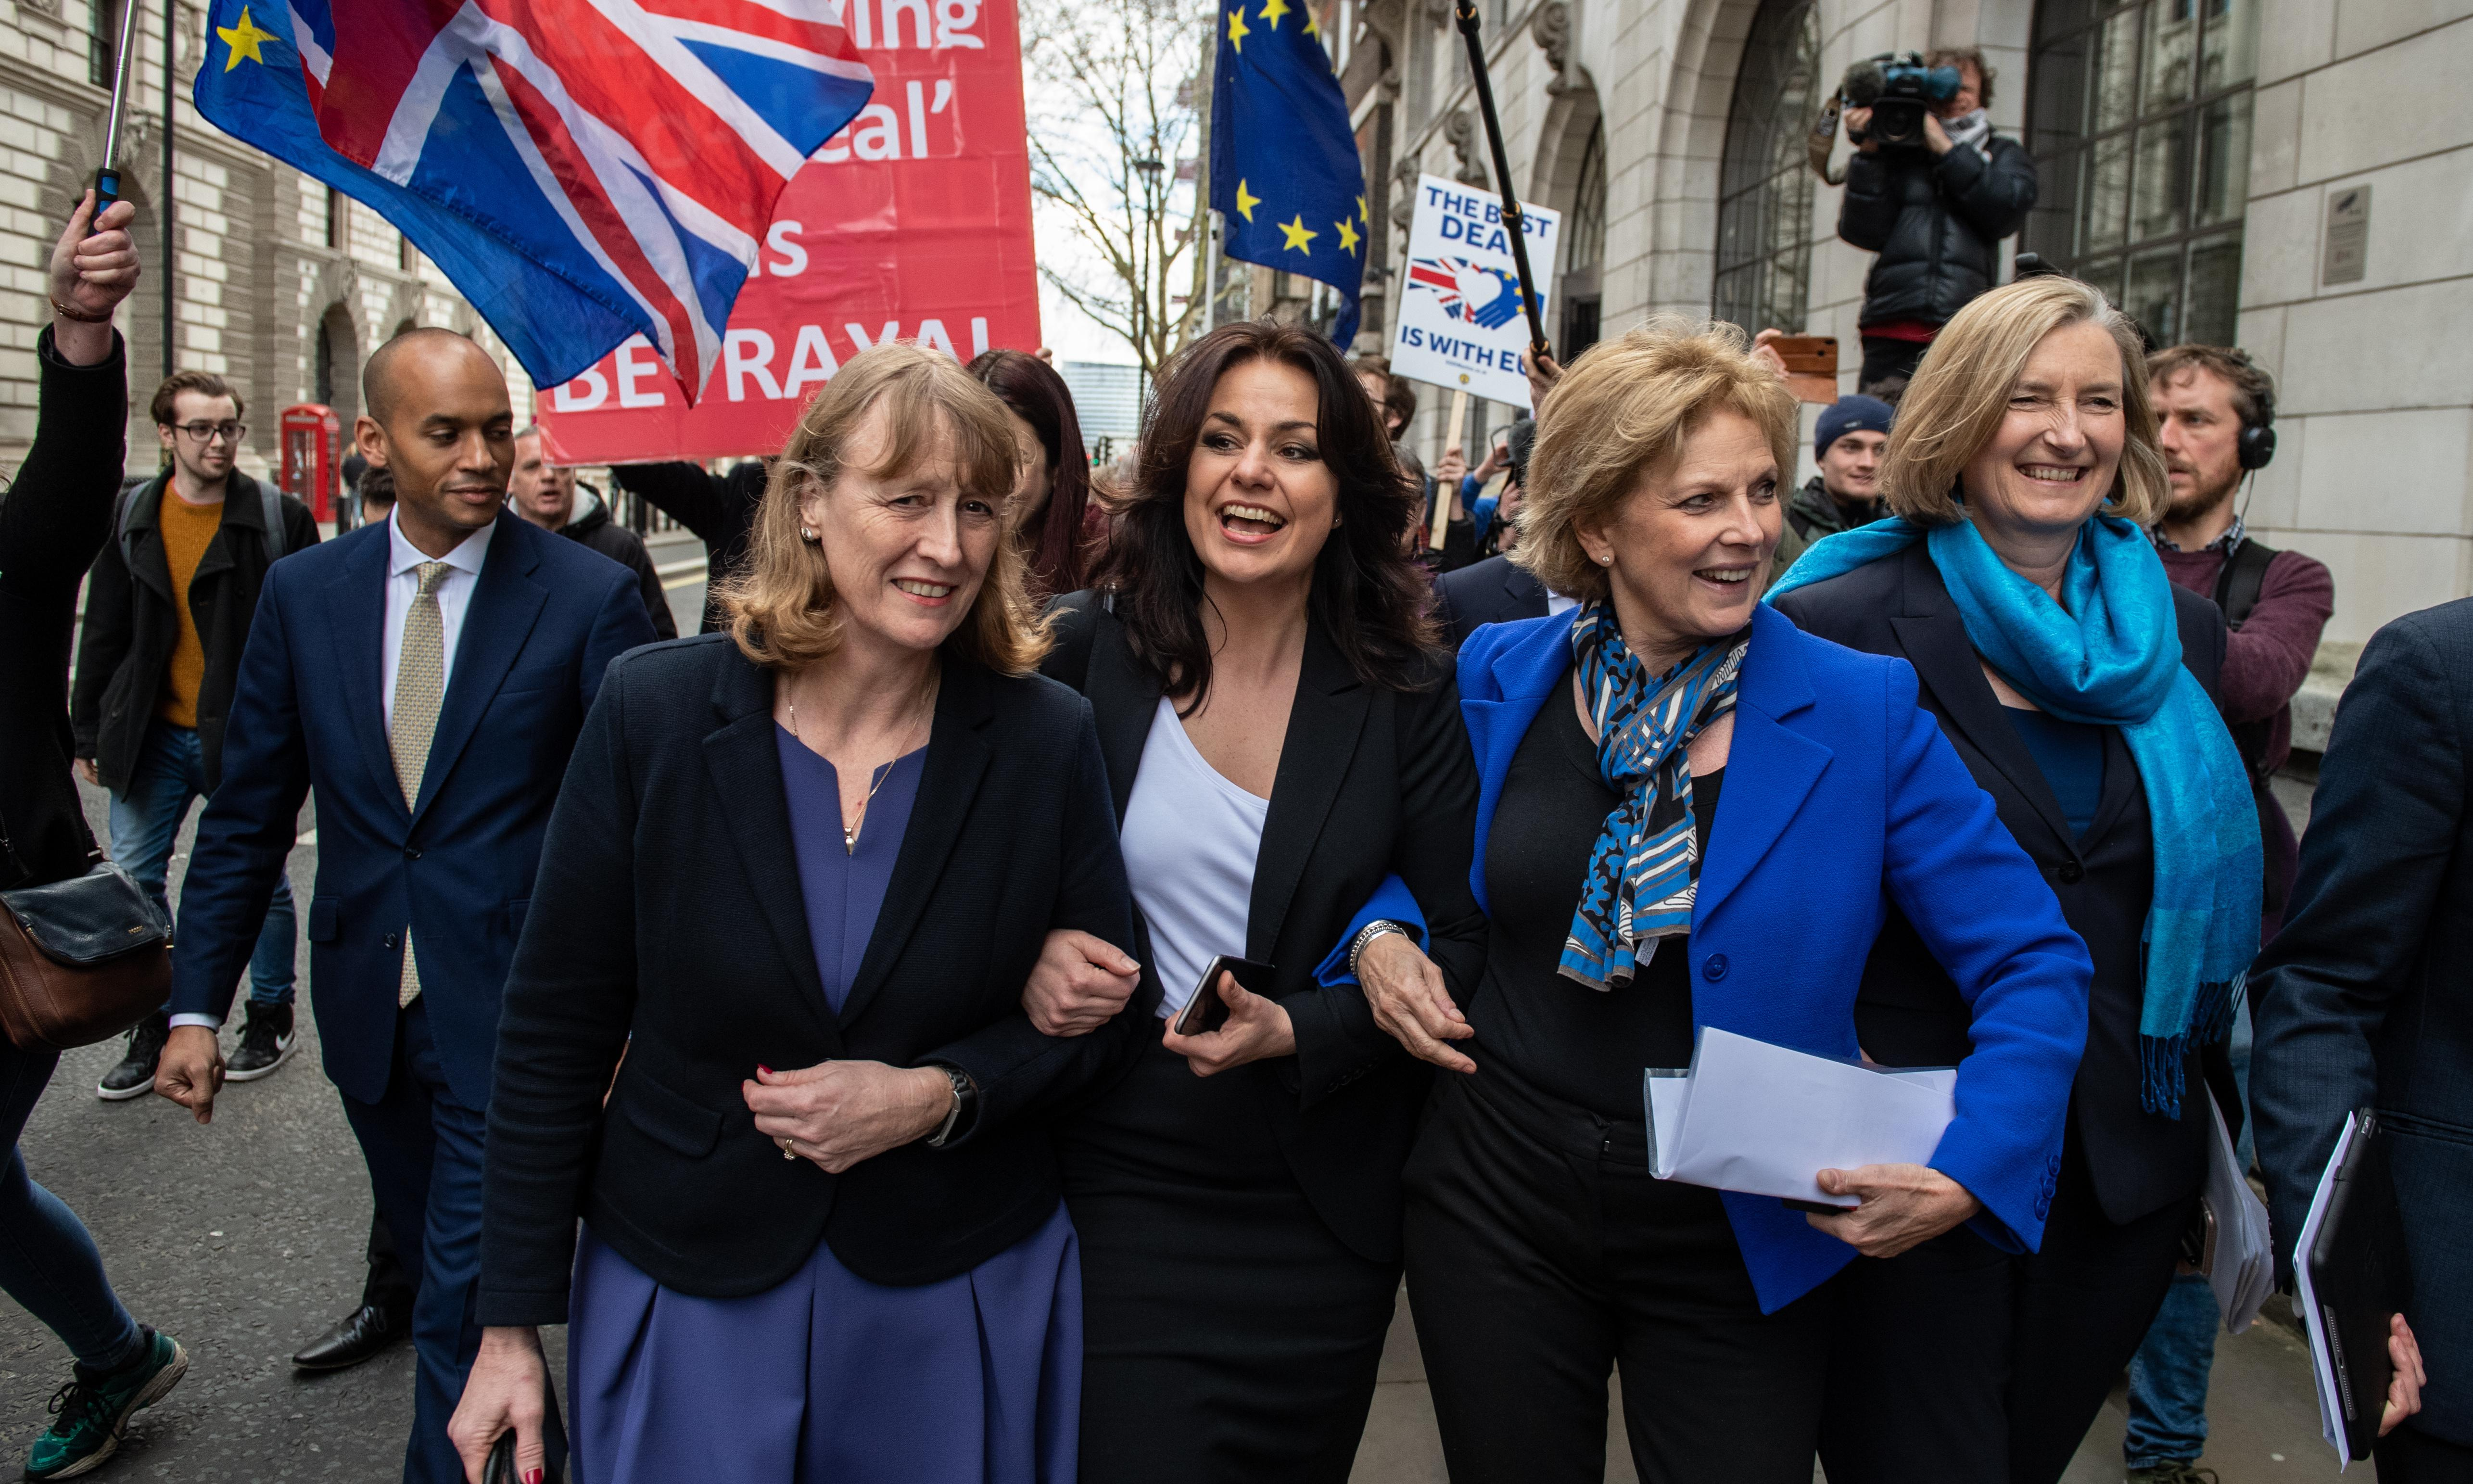 The Independent Group will at last give us real opposition to Brexit